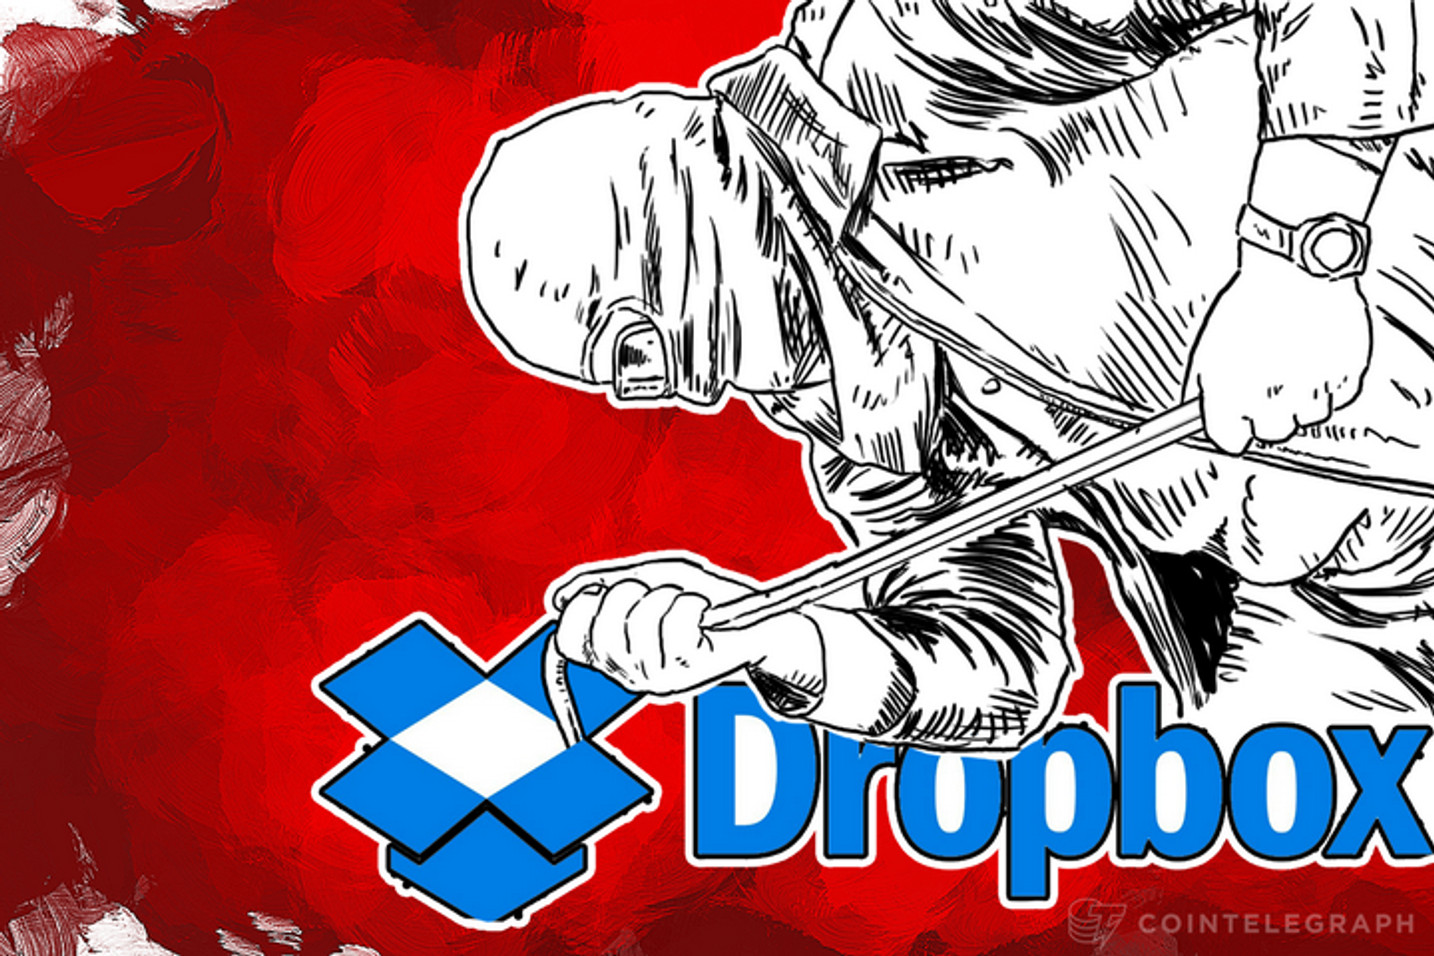 7 Million Dropbox Login Details Put Online for Bitcoin, Dropbox Denies Hack